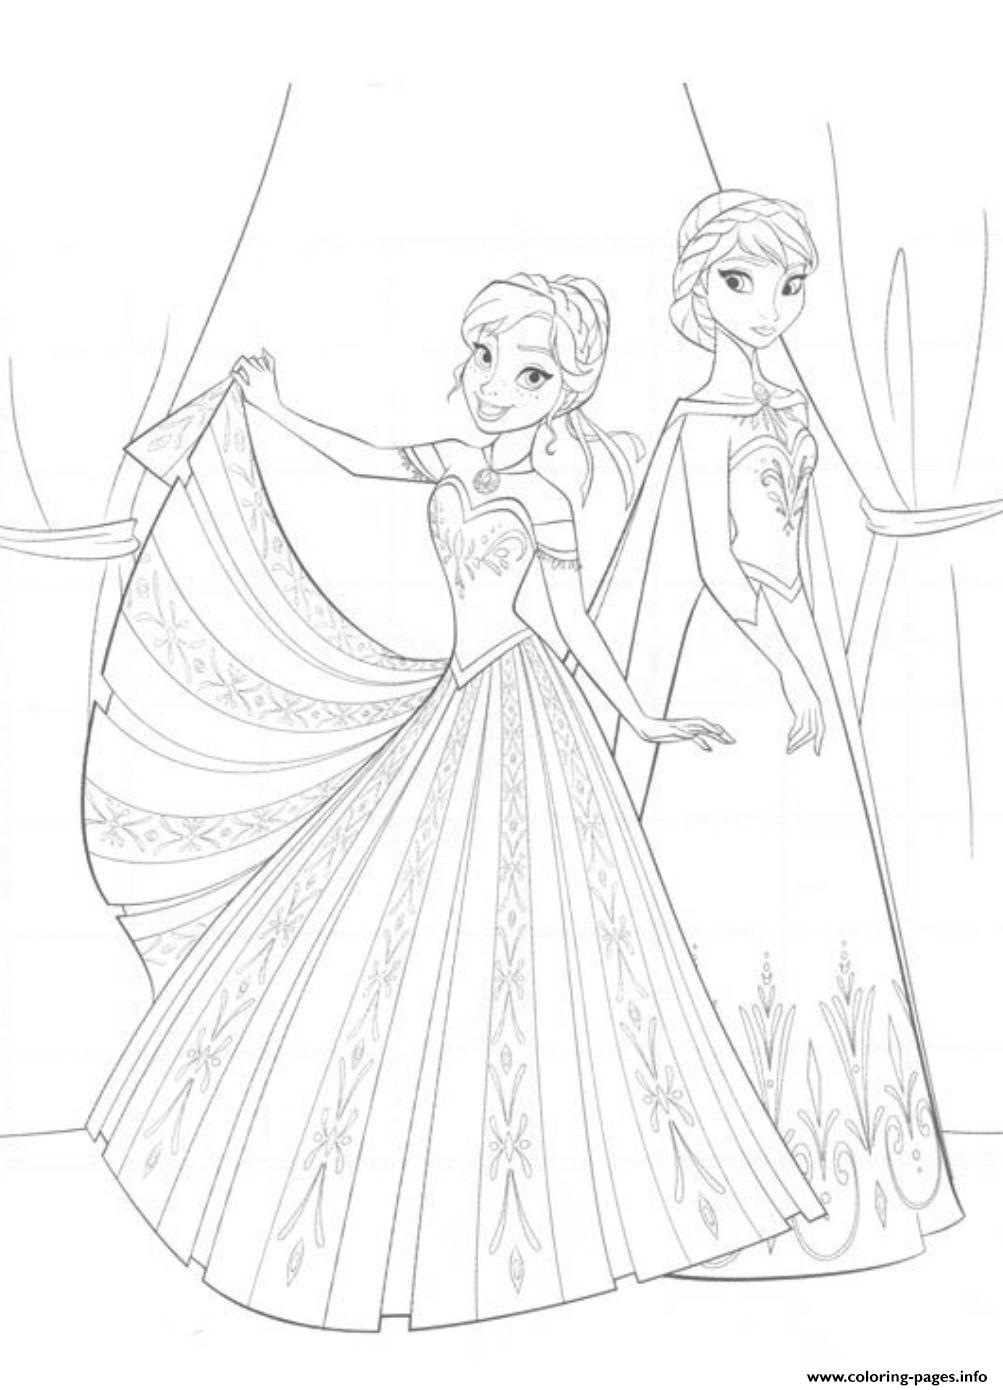 Princess Frozen 3e69 coloring pages